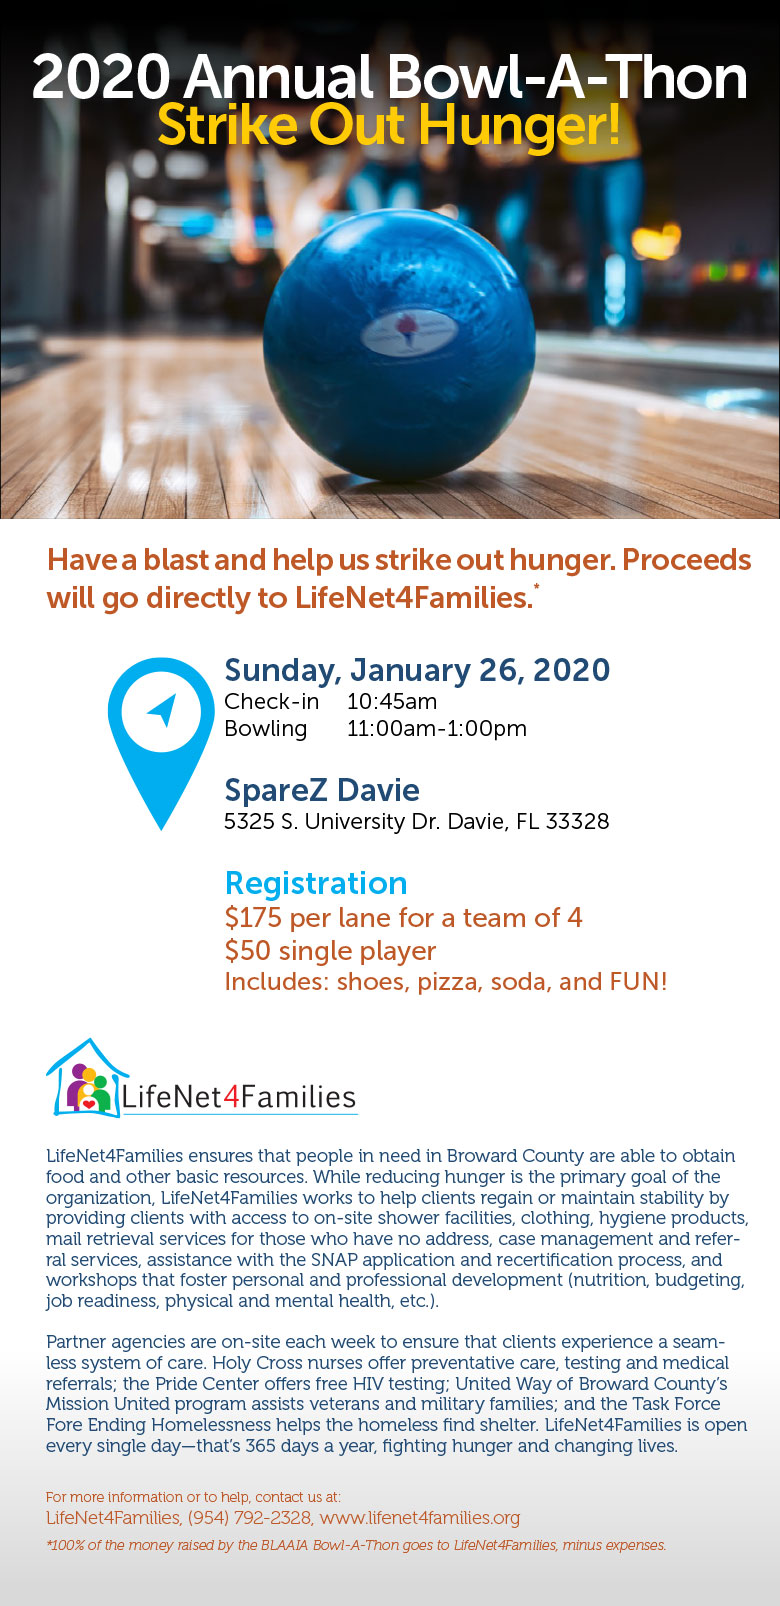 2020 bowling for hunger event